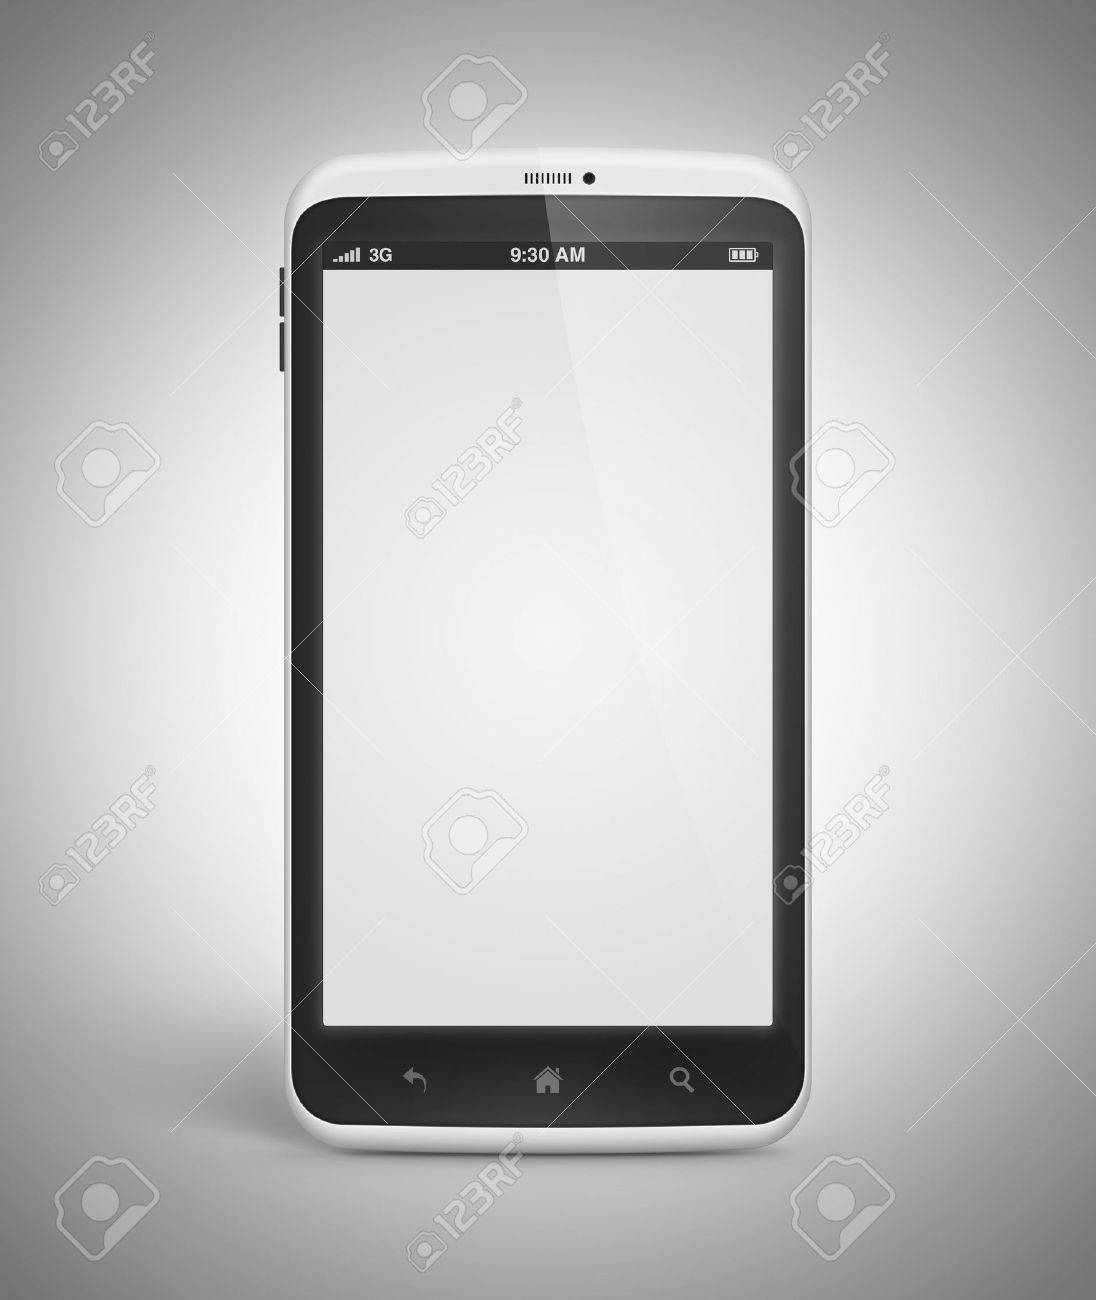 Modern mobile smartphone with blank screen isolated on gray background  Include clipping path for phone and screen Stock Photo - 16248331